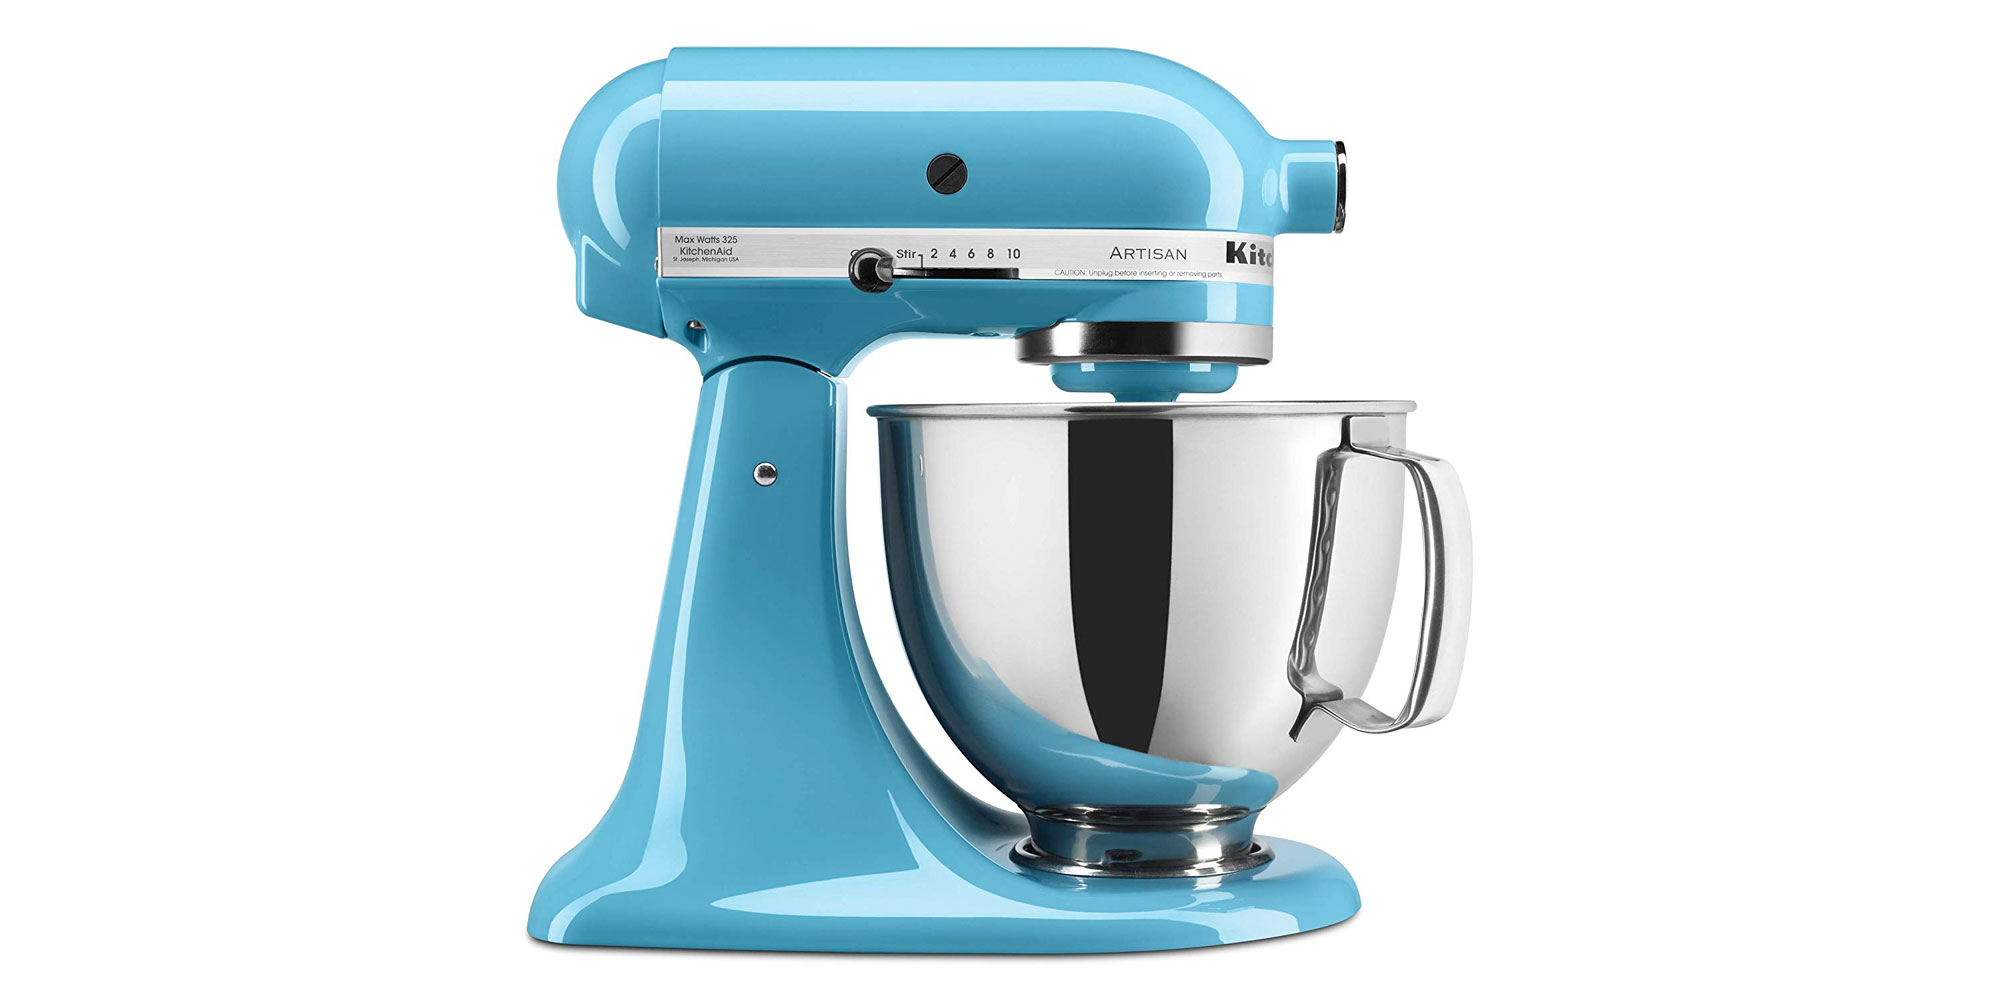 Kitchenaid S 5 Qt Stand Mixer Is A Cooking Must At 200